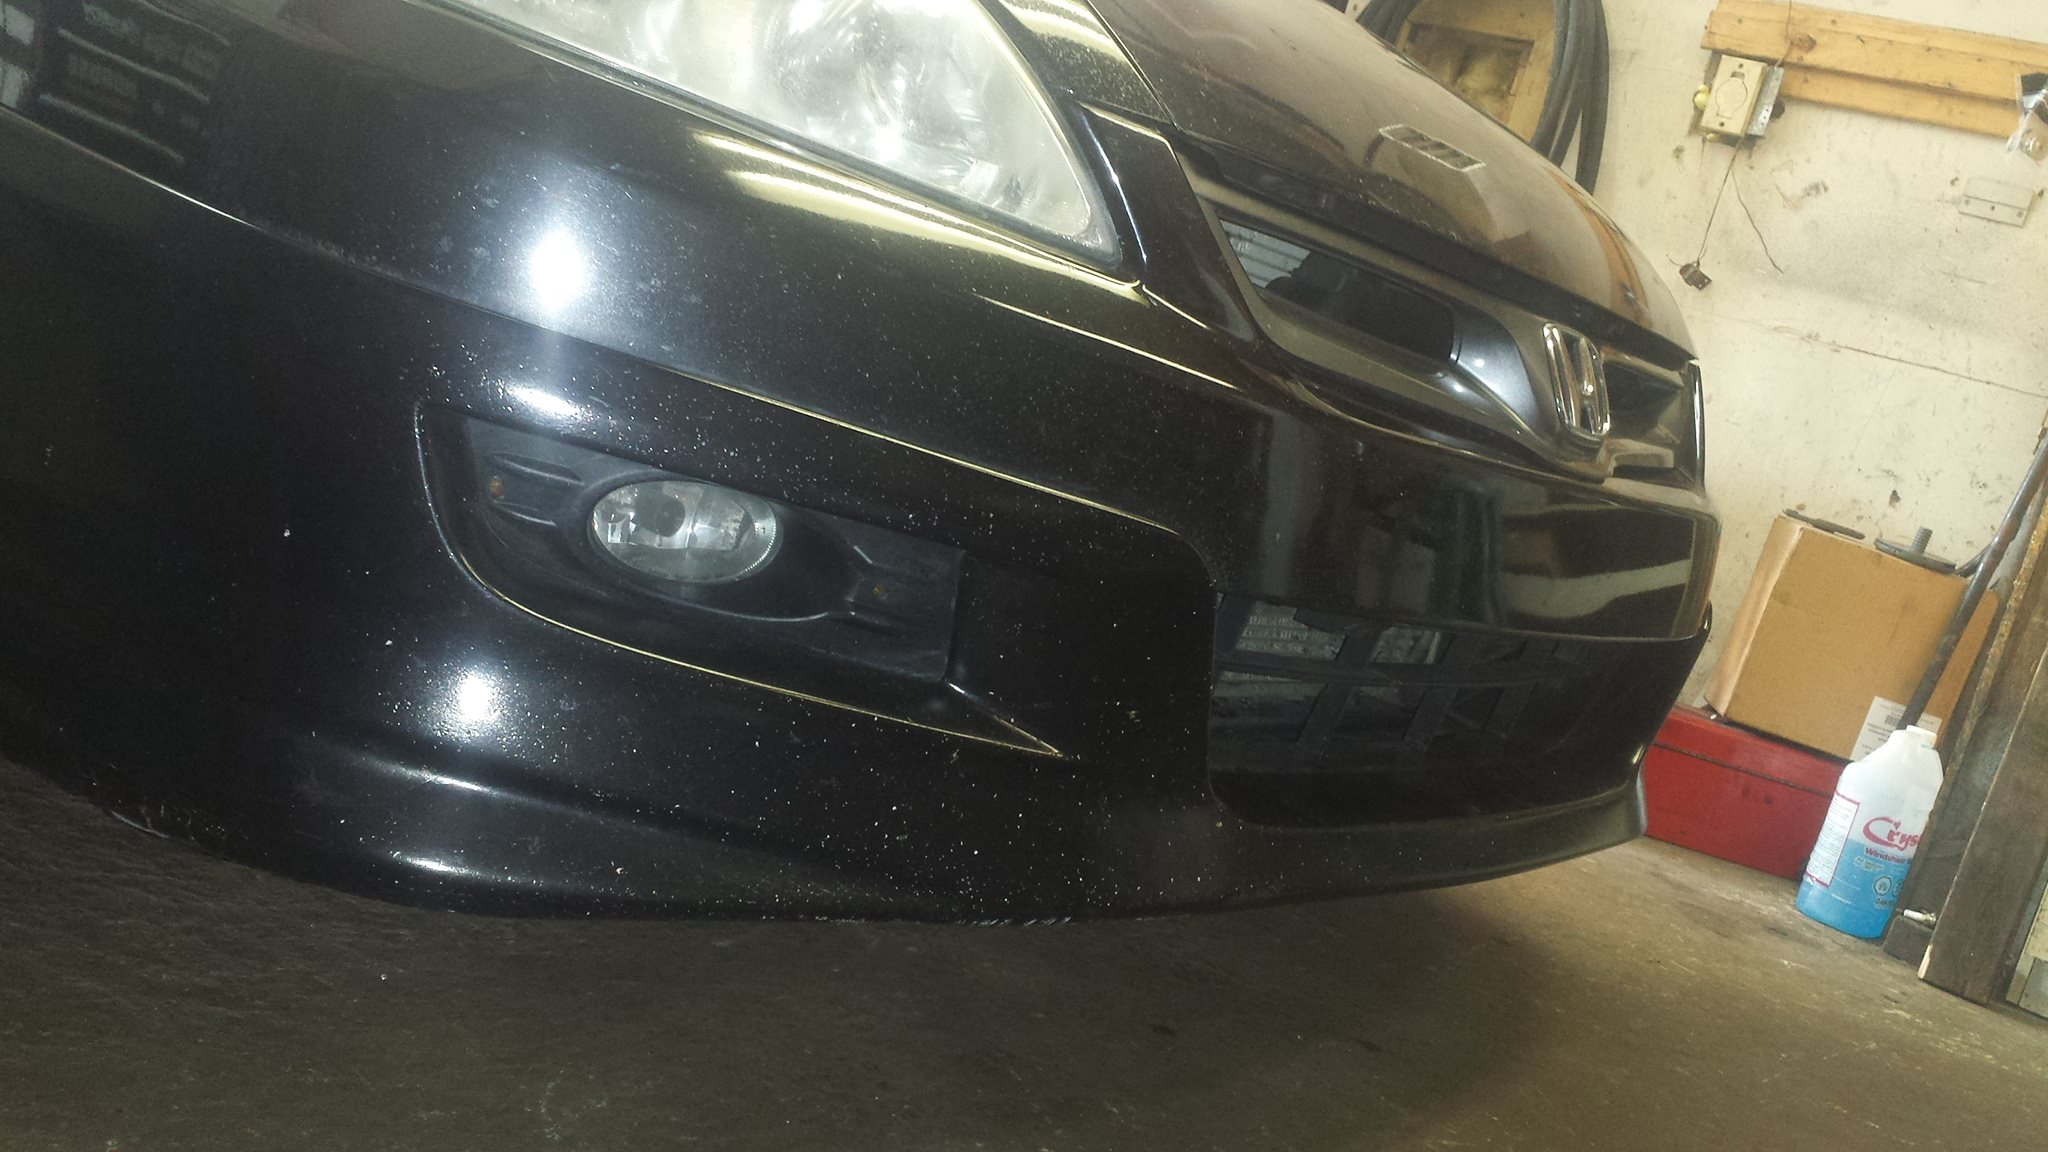 2006-accord-j35a8-2008-acura-tl-type-s-8